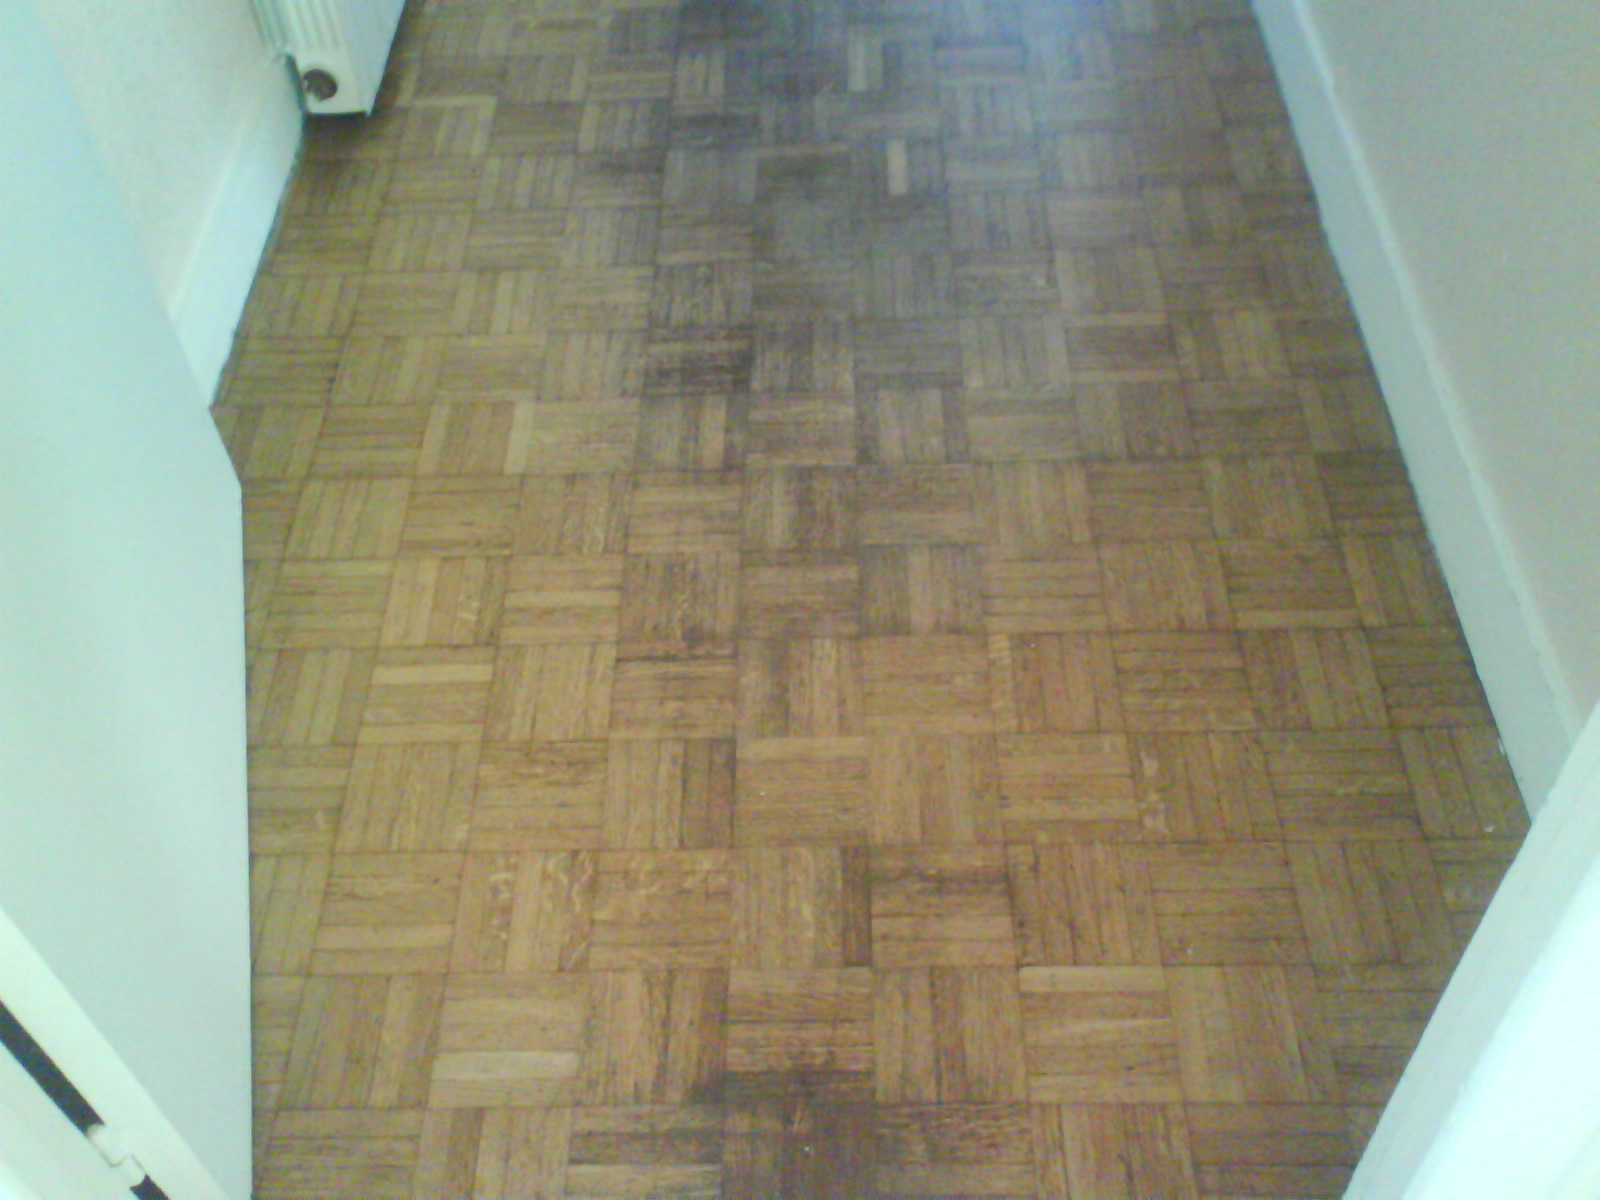 Nettoyer parquet ancien with nettoyer parquet ancien - Renovation parquet ancien ...